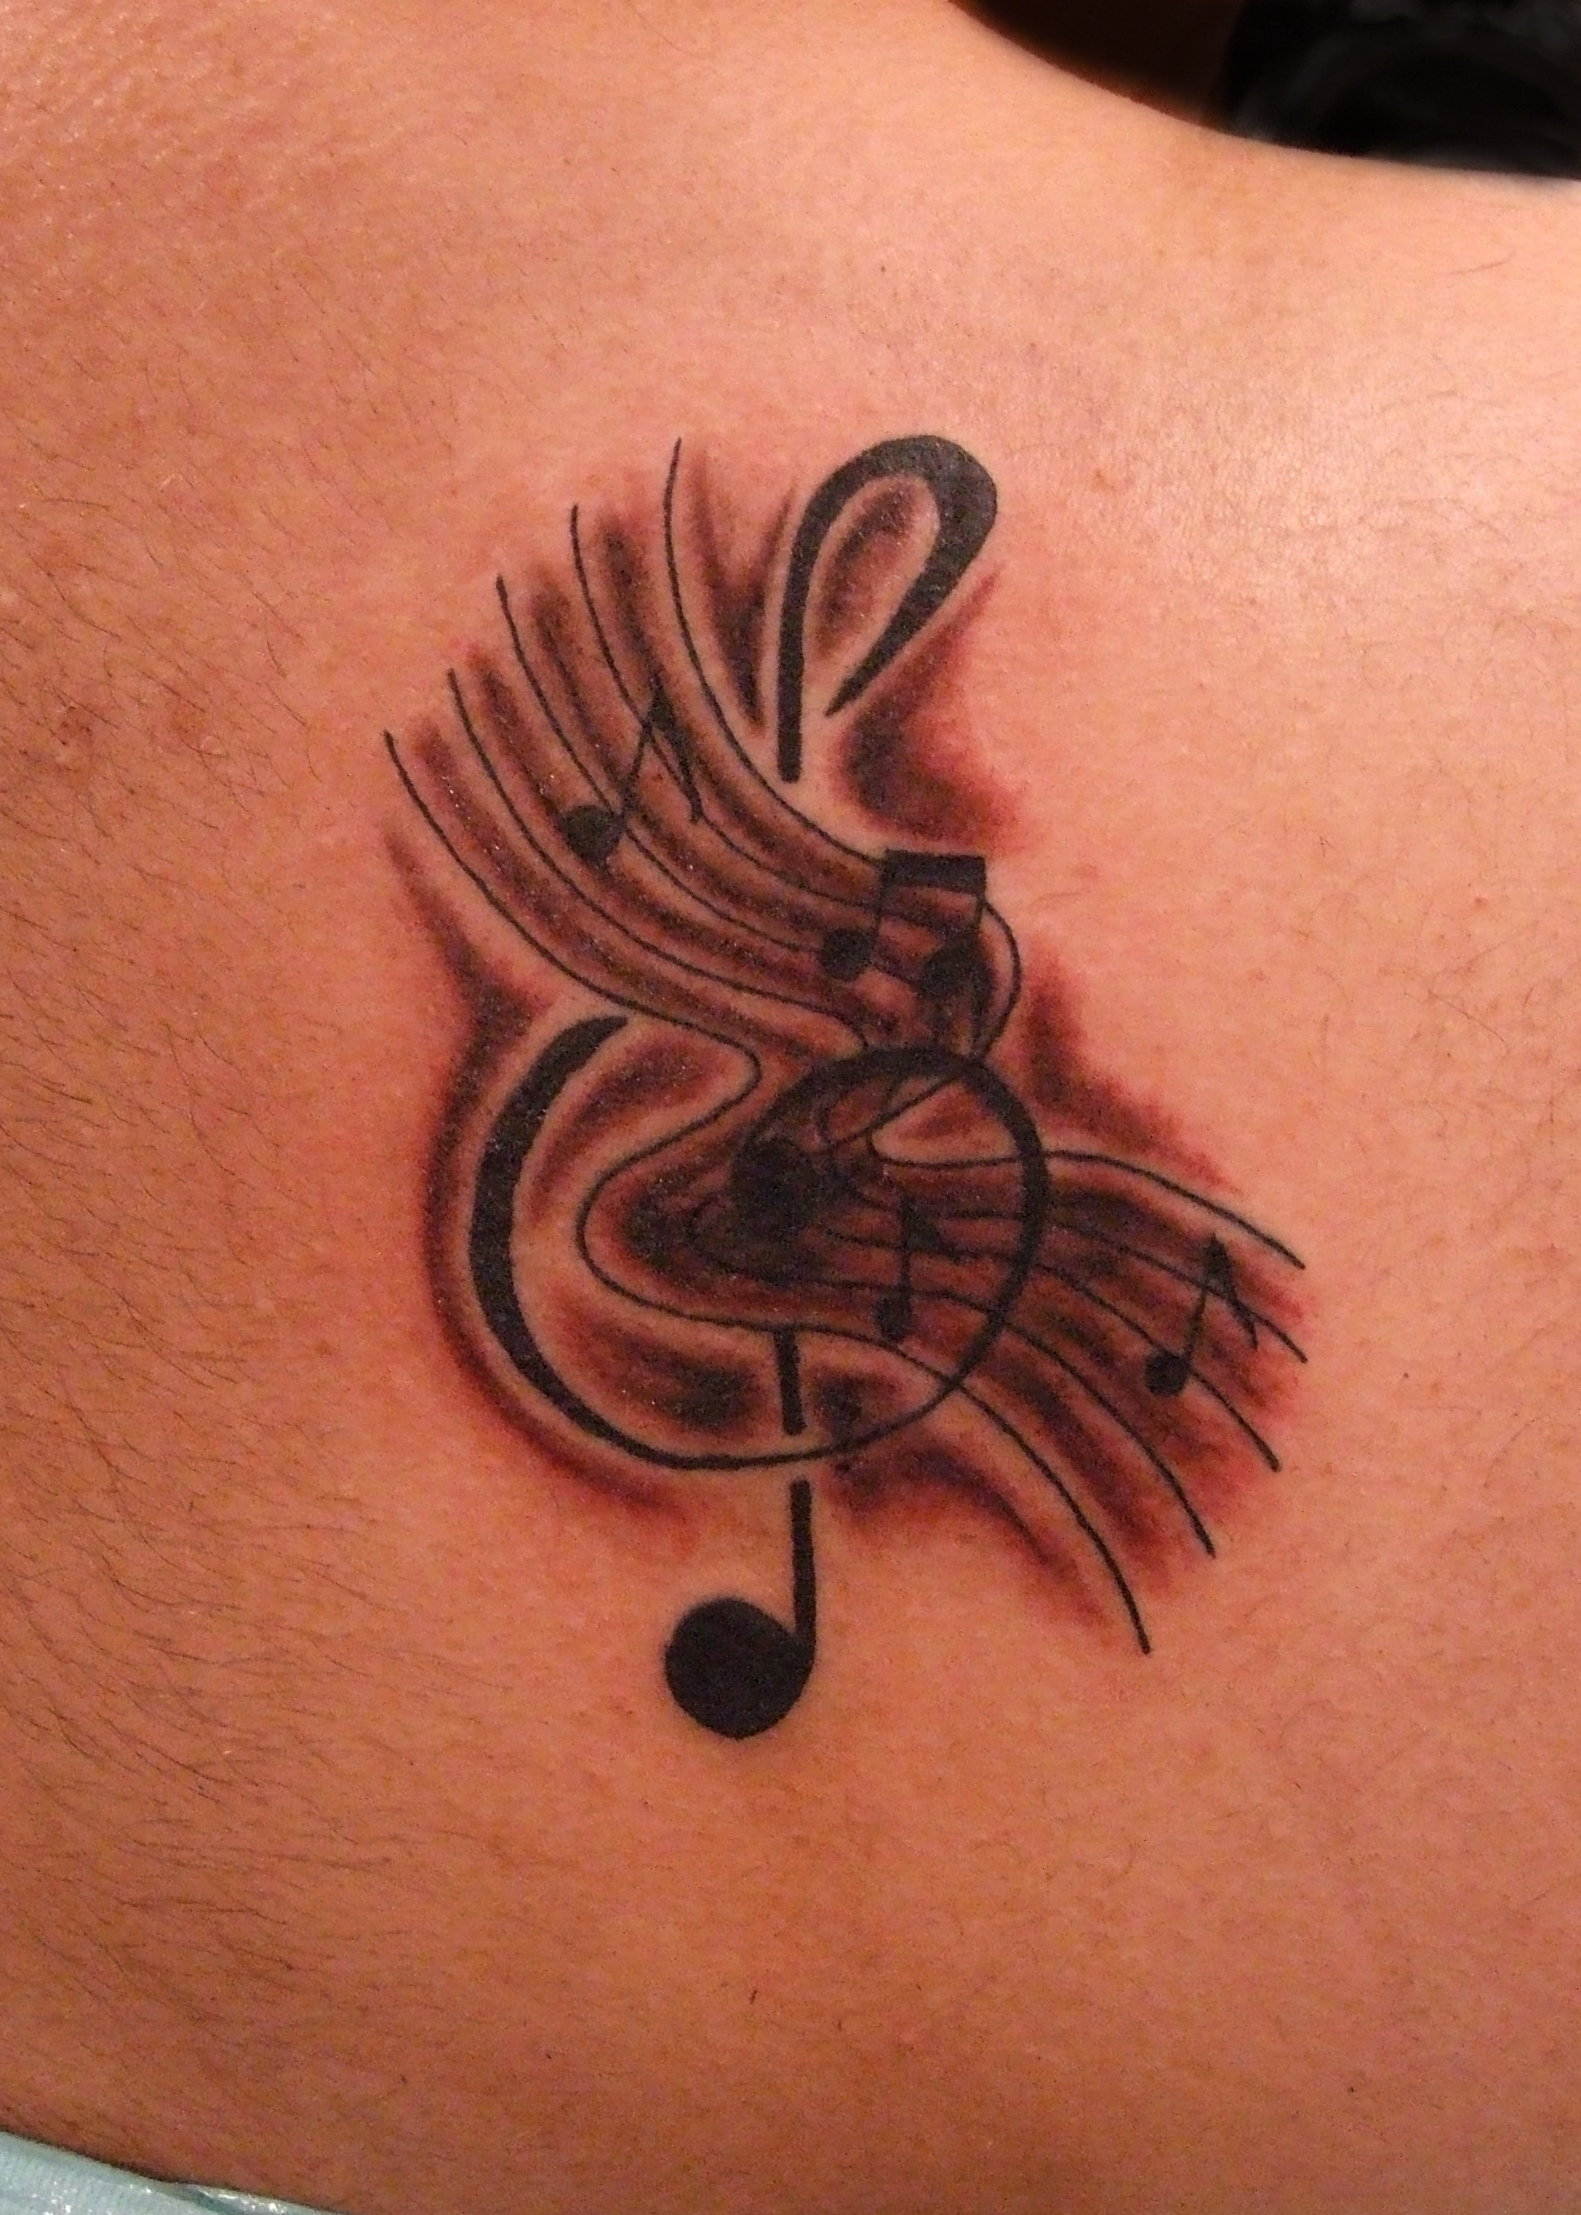 Music Tattoos Designs, Ideas and Meaning | Tattoos For You | 1581 x 2215 jpeg 1749kB